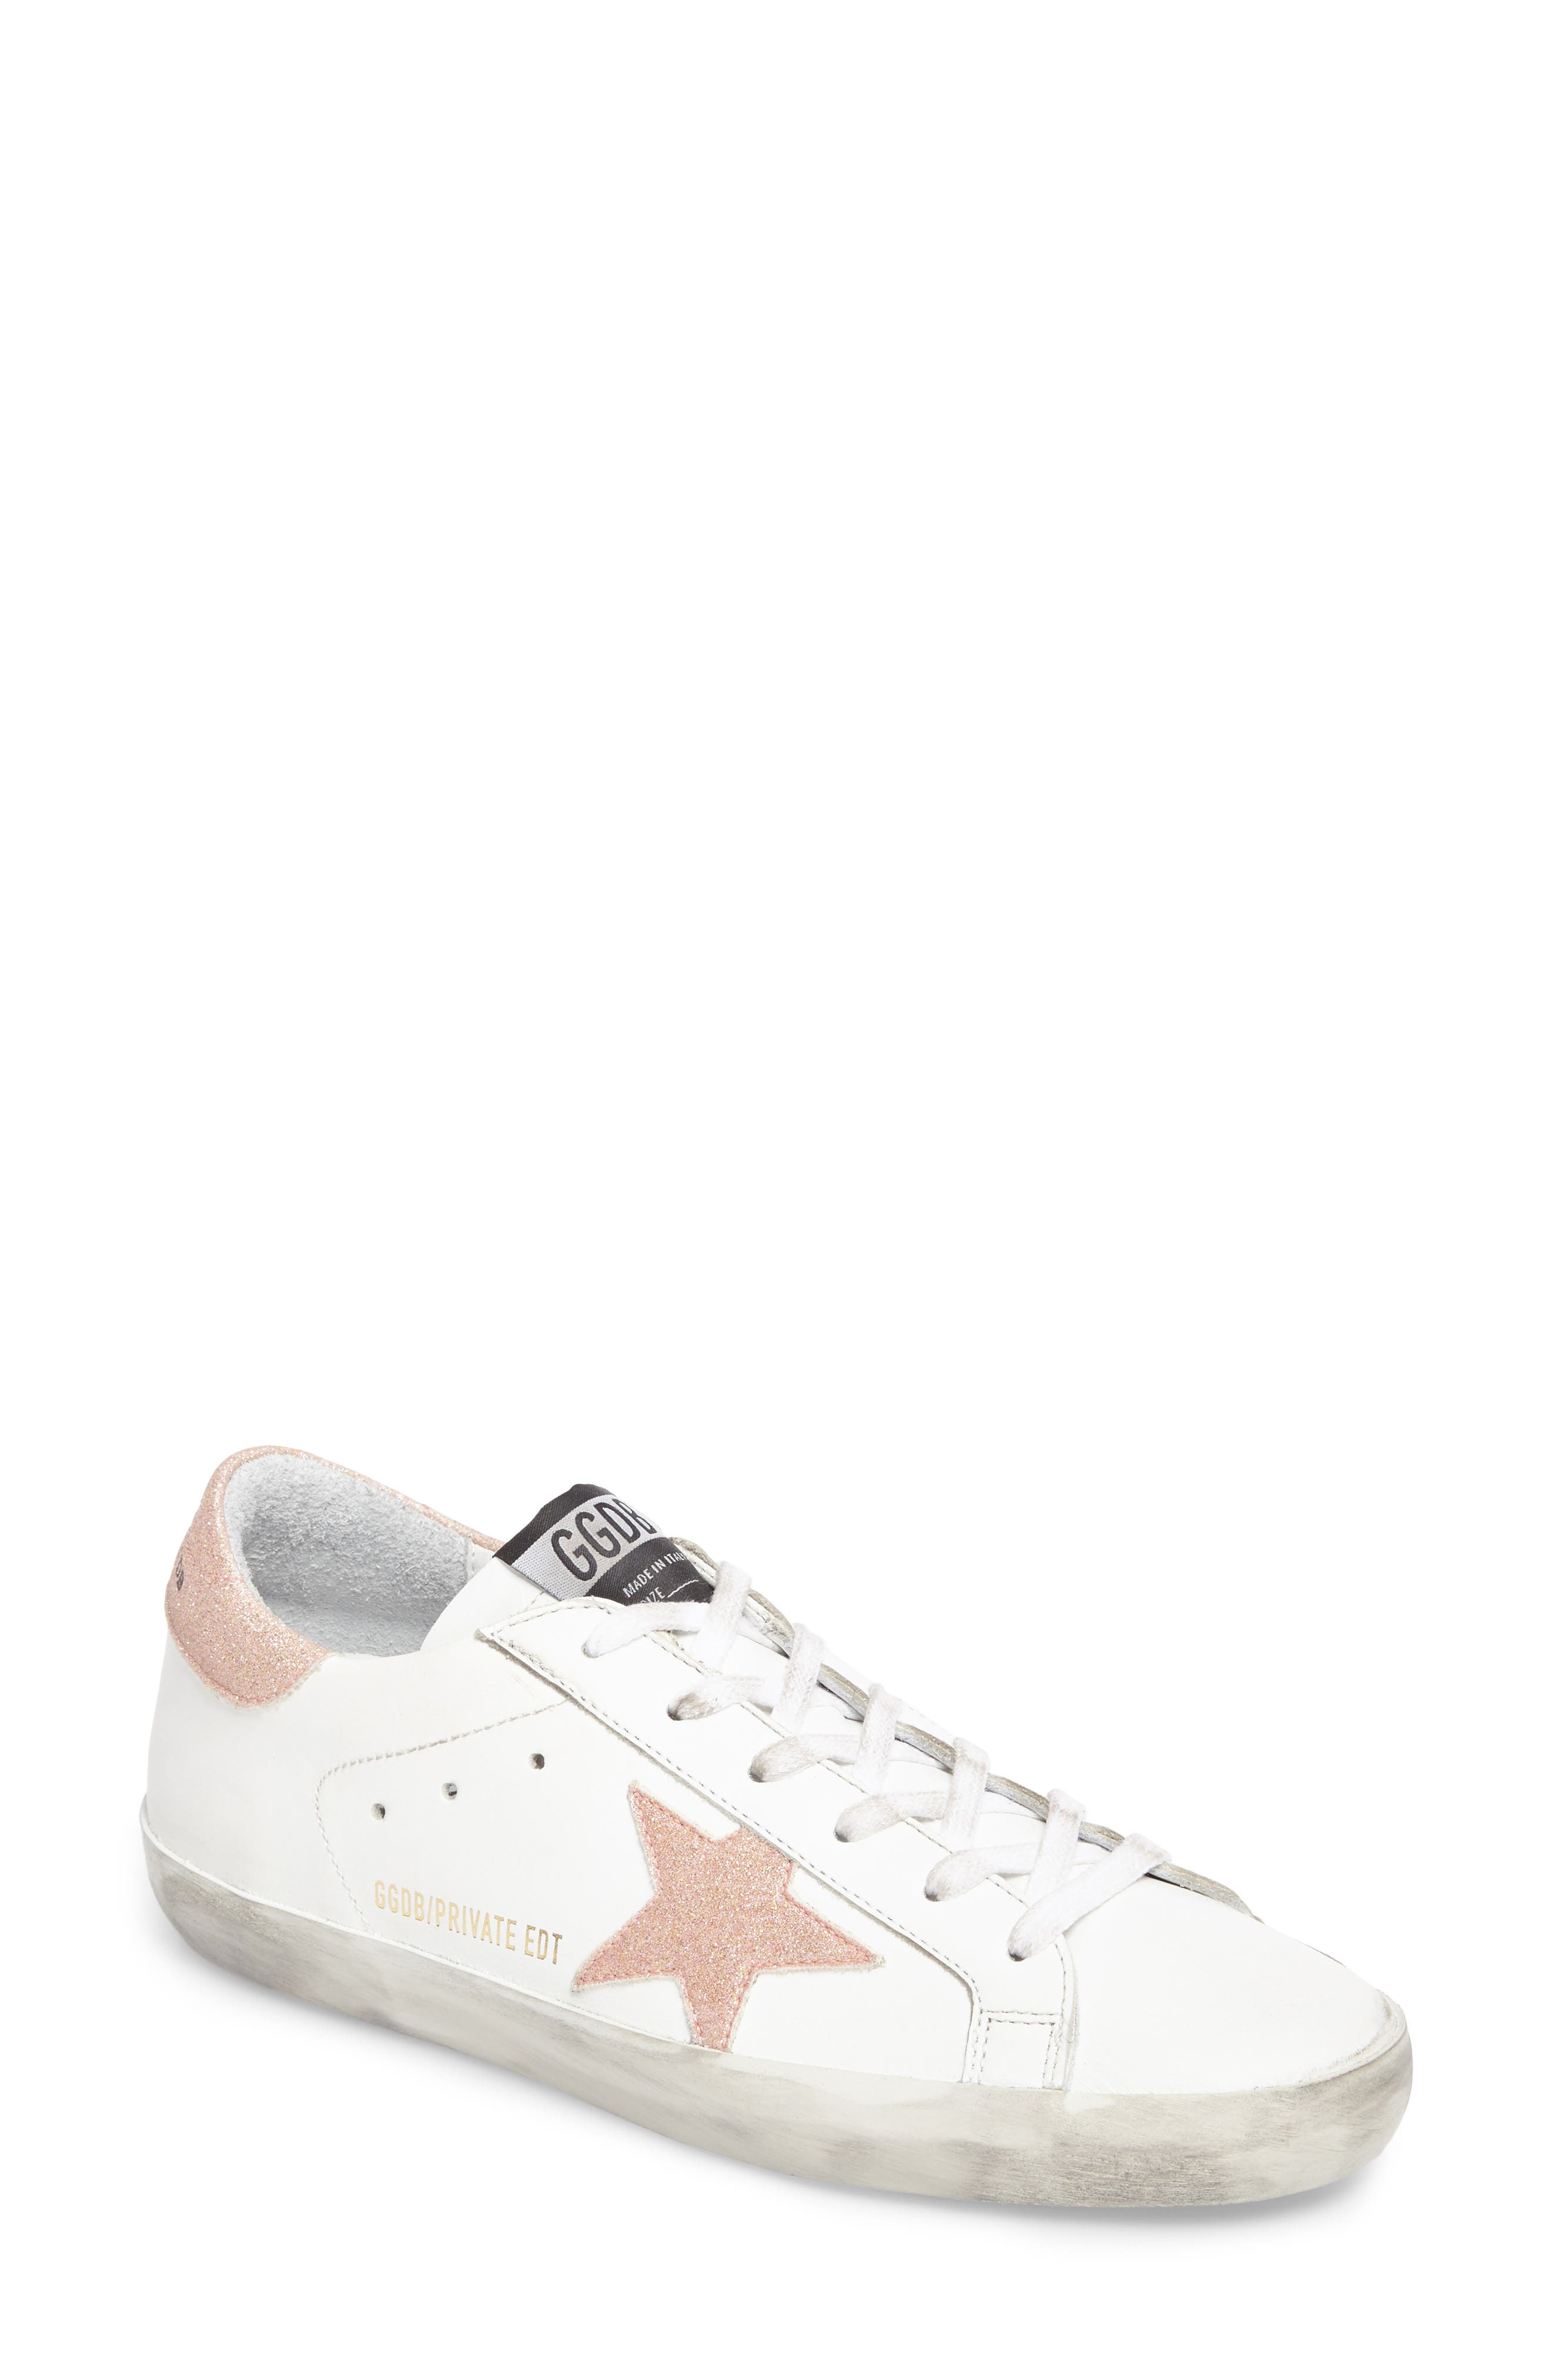 Superstar Low Top Sneaker,                         Main,                         color,